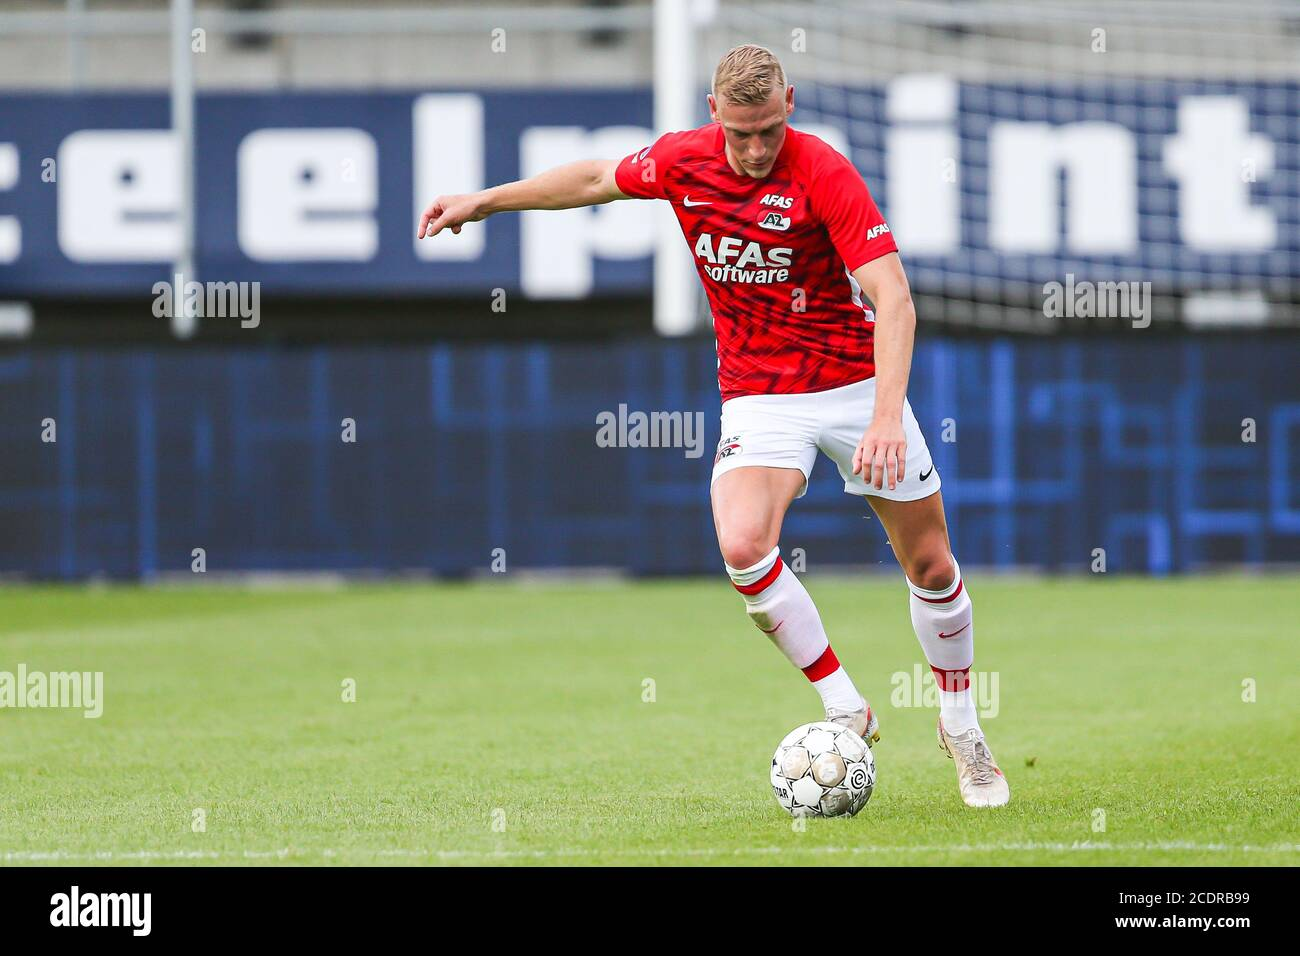 Rotterdam 29 8 20 Cars Jeans Stadion Pre Season 20 21 Ado Den Haag Az Az Player Joris Kramer Credit Pro Shots Alamy Live News Stock Photo Alamy